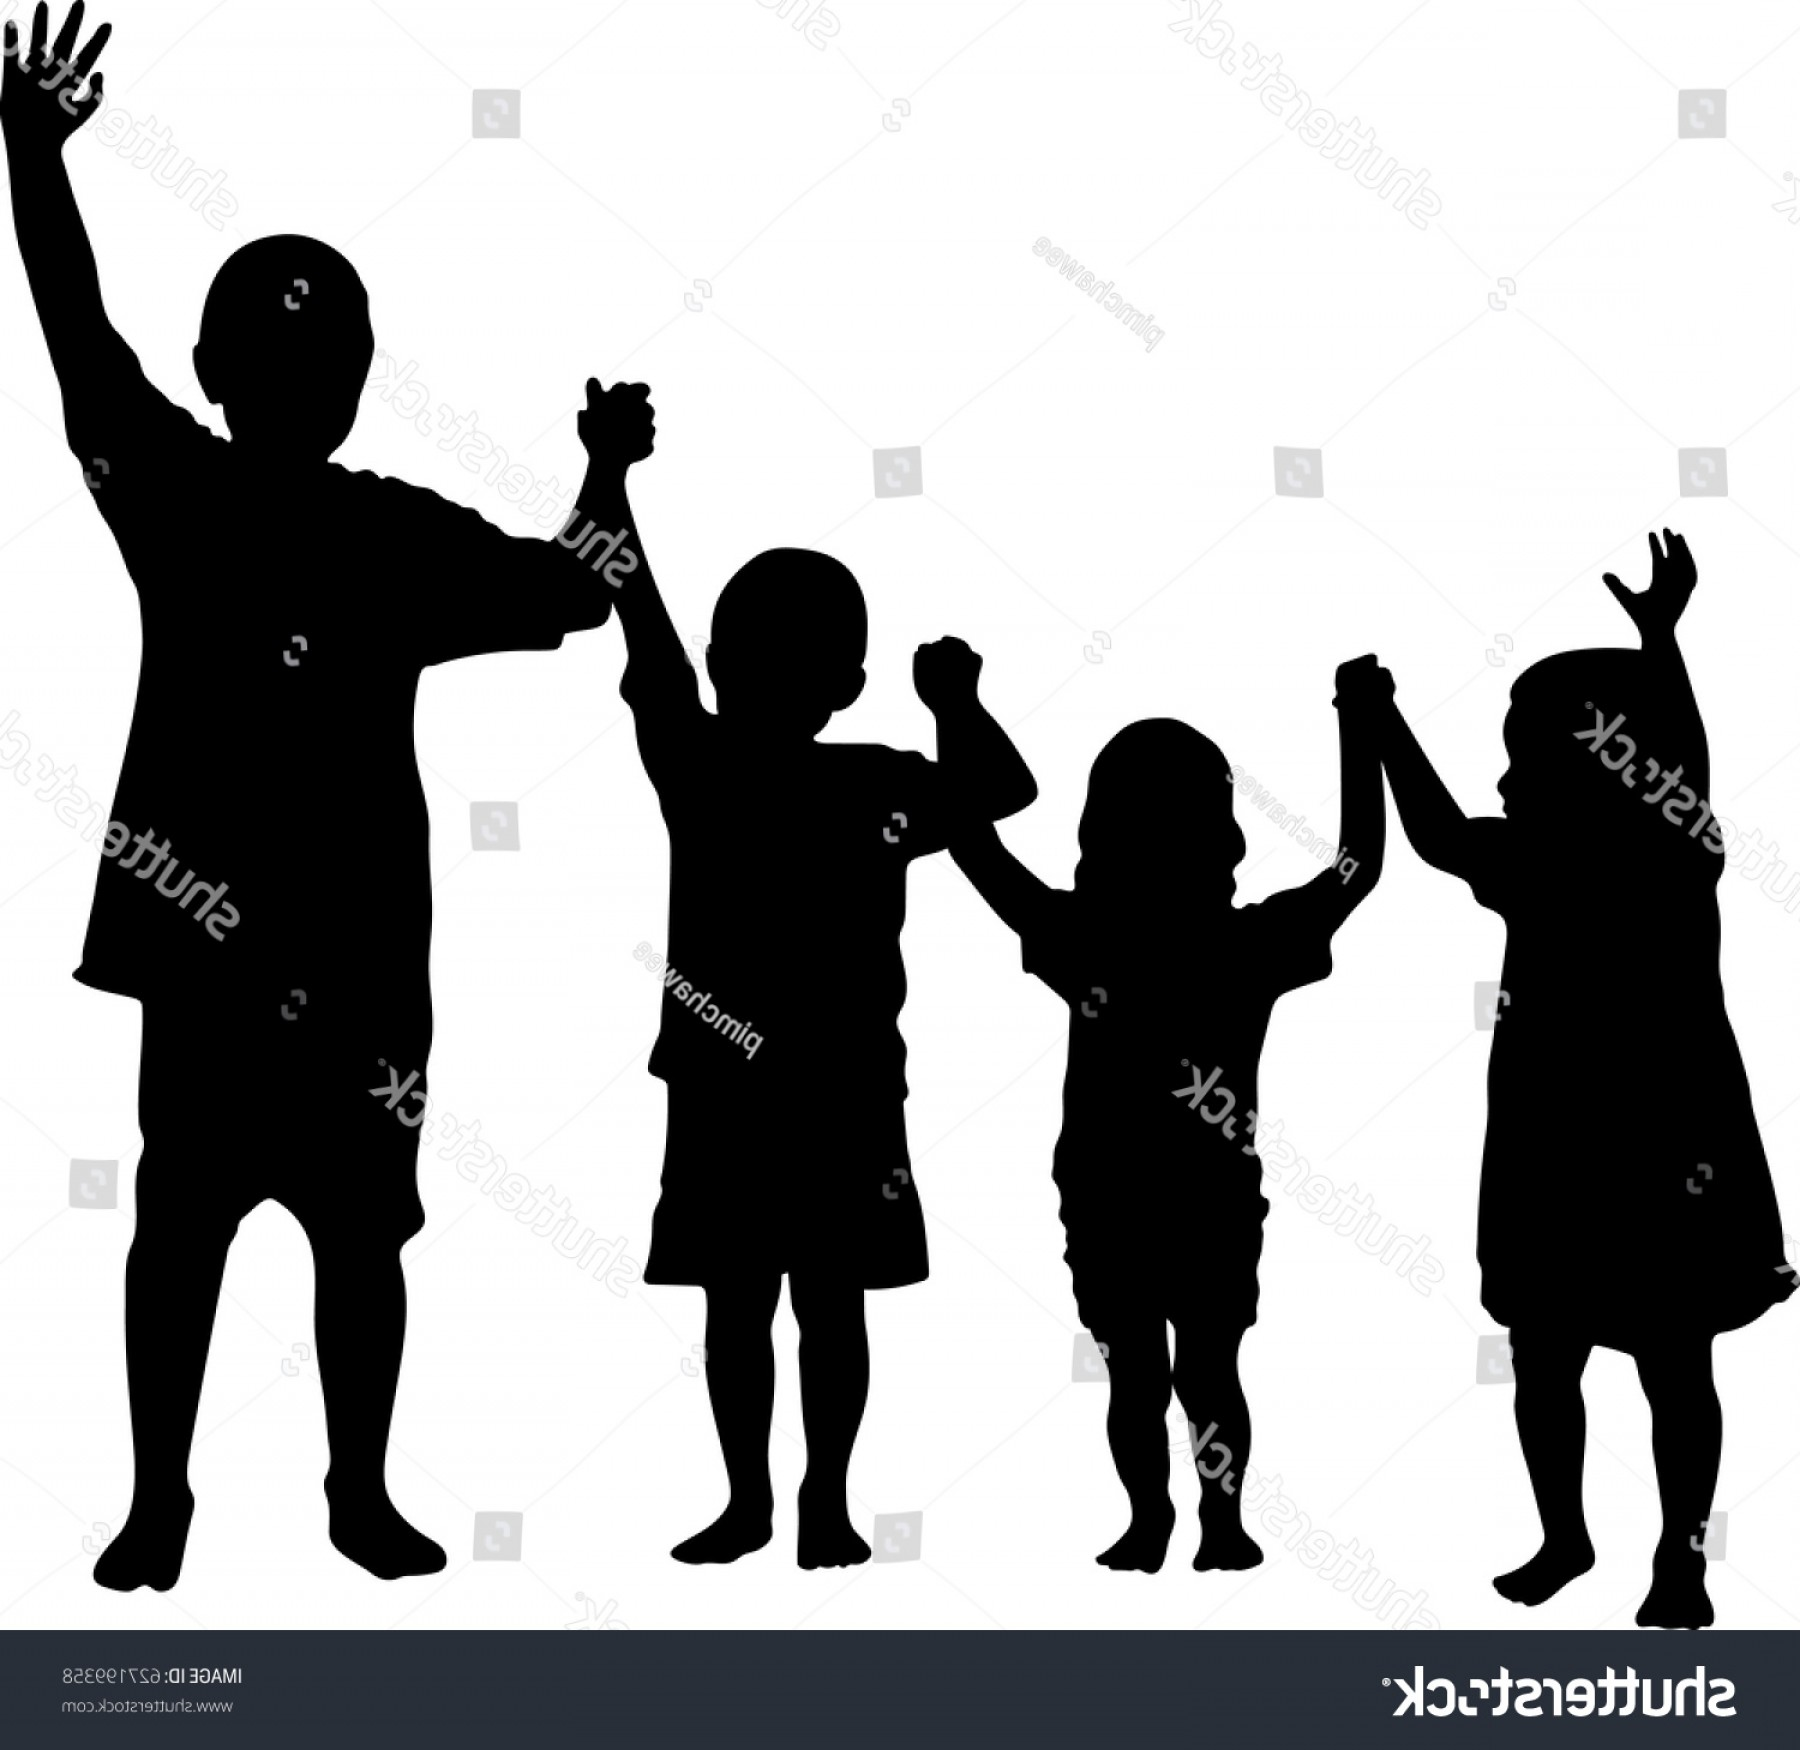 Holding Hands Up Silhouette Vector: Silhouette Vector Children Holding Hands